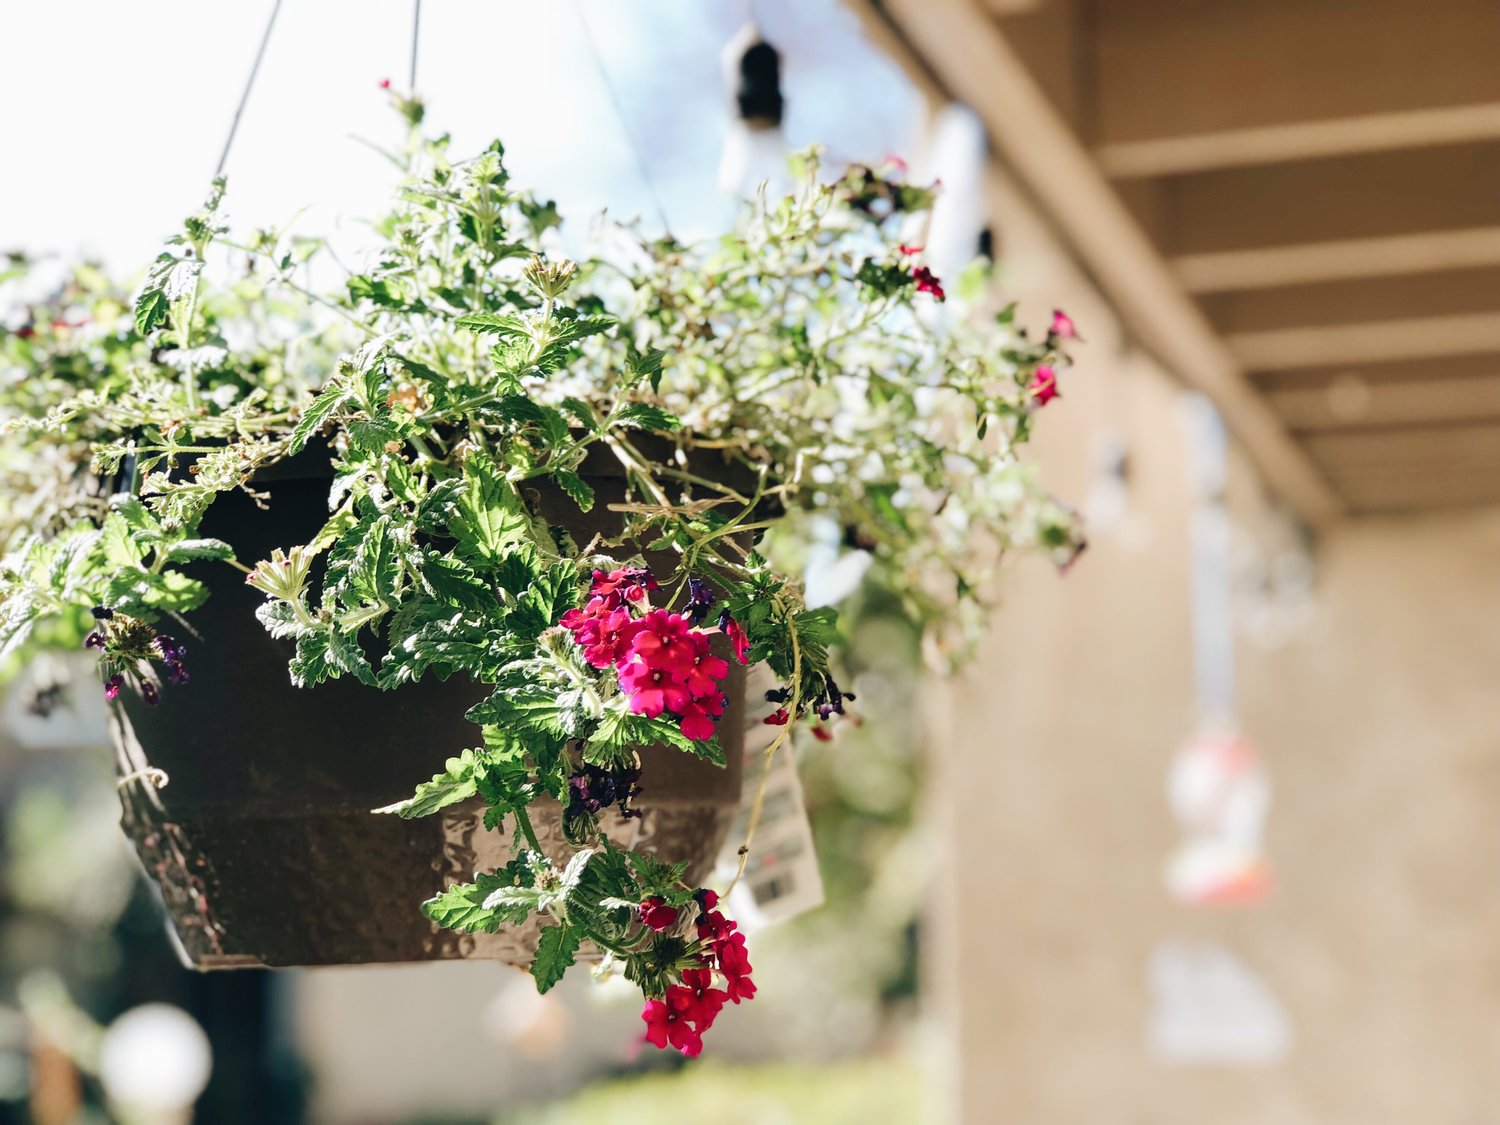 5. Flower Baskets - preferably with bright tube like flowers, just until the hummingbirds find your place, then you can put the bright colored plants wherever you want!. I recently found this plant at Lowes for $5 in the clearance section because it was dried out!